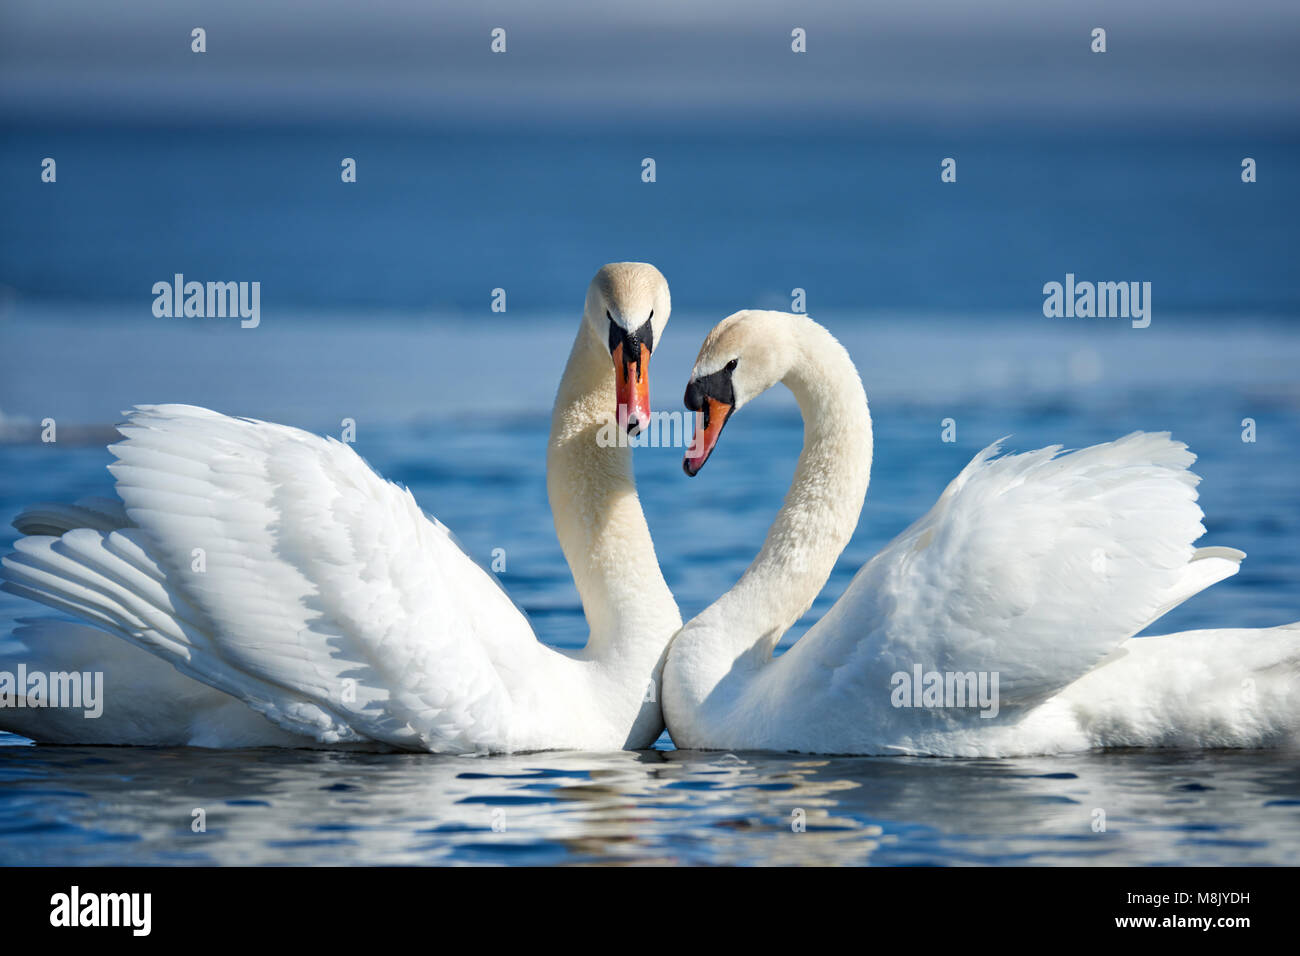 Romantic couple of swans on the lake. Swan reflection in water Stock Photo